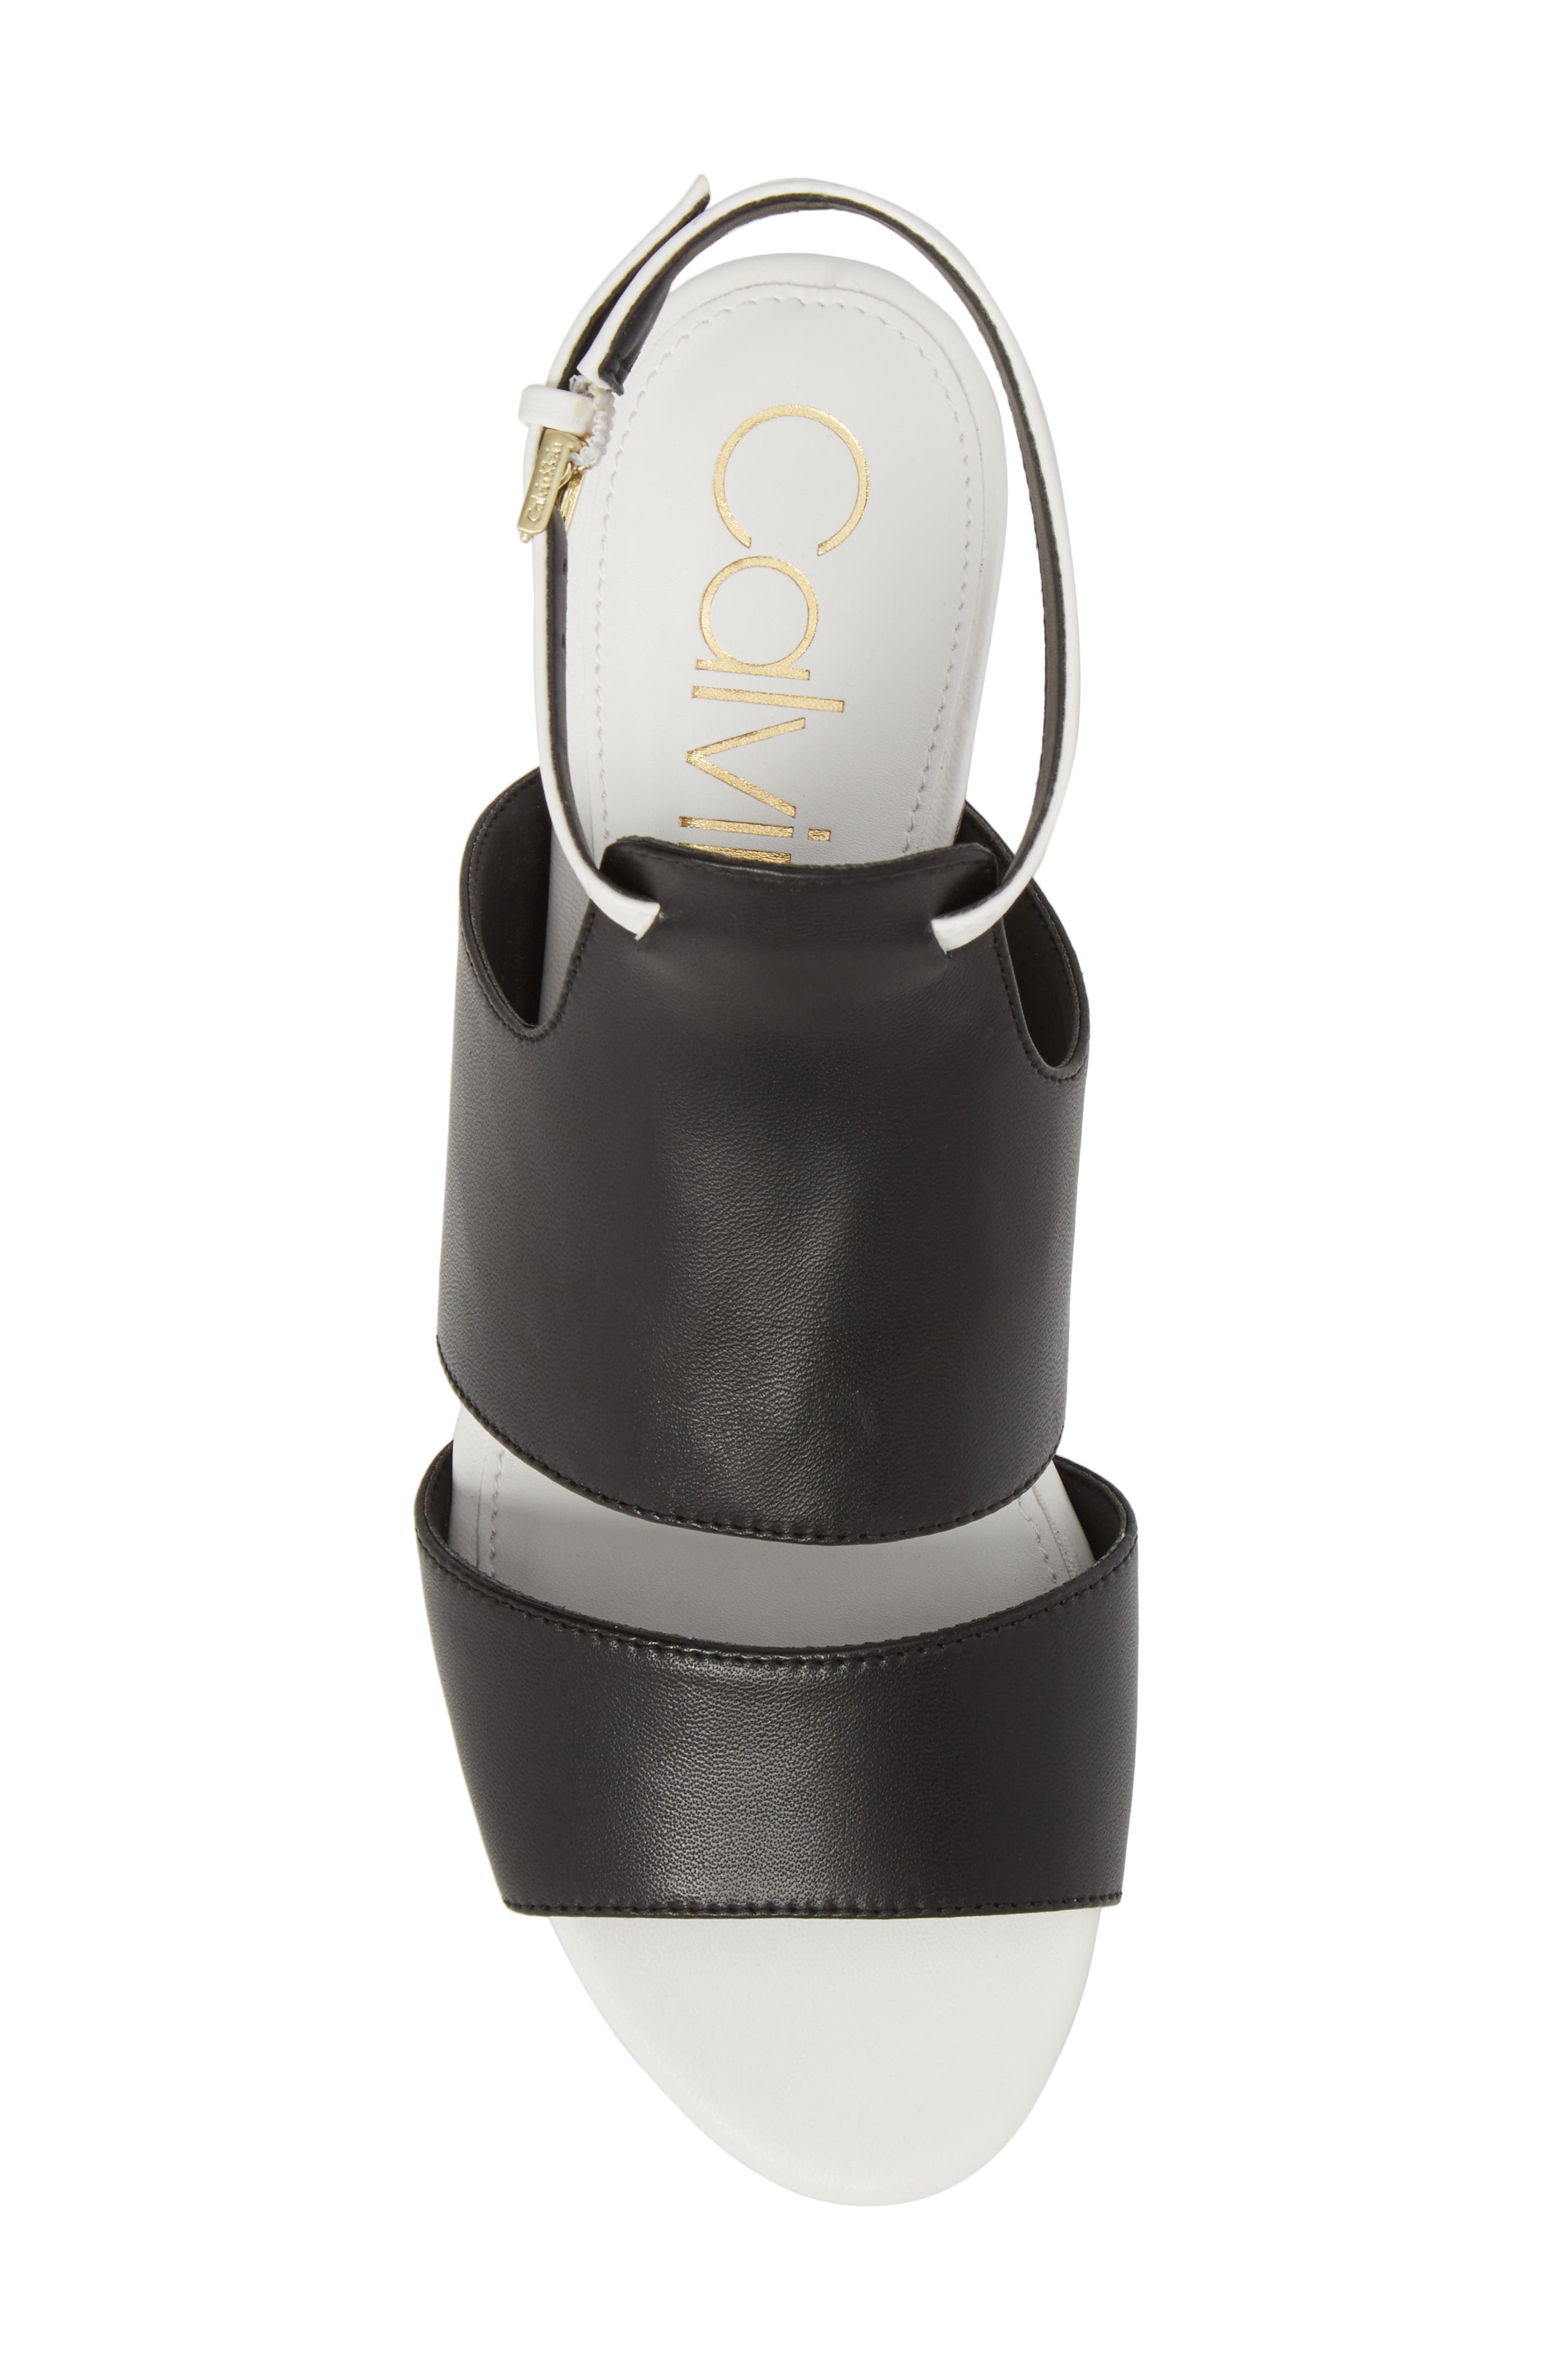 Fernarda Sandal,                             Alternate thumbnail 5, color,                             Black Leather